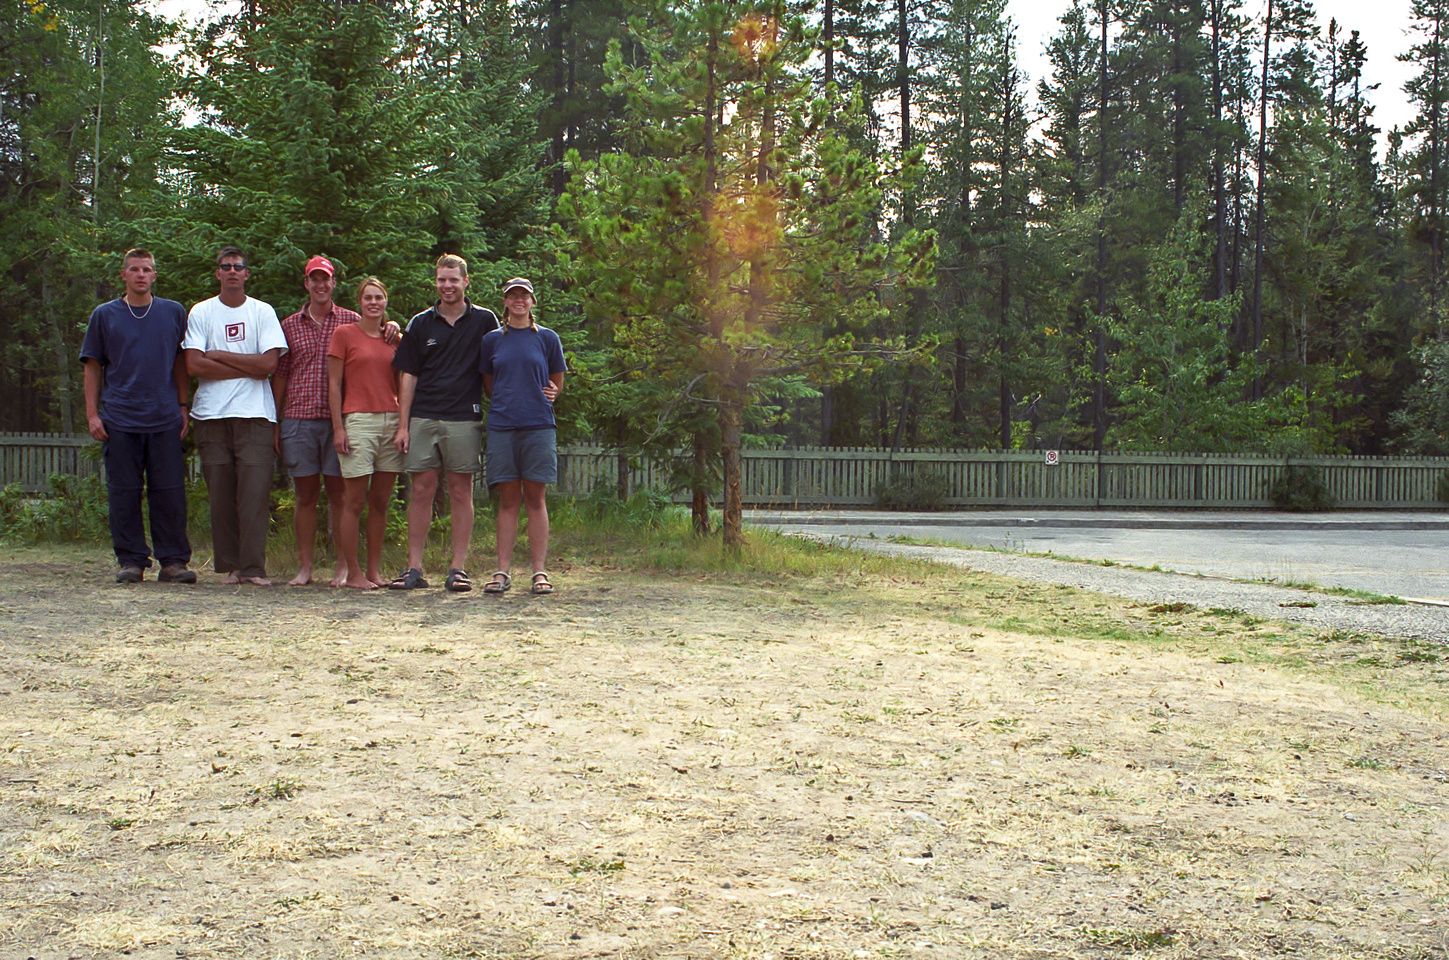 Kev, Jon, Vern, Hanneke, Gus and Gwen at the end of our trip in the Maligne Canyon parking lot.